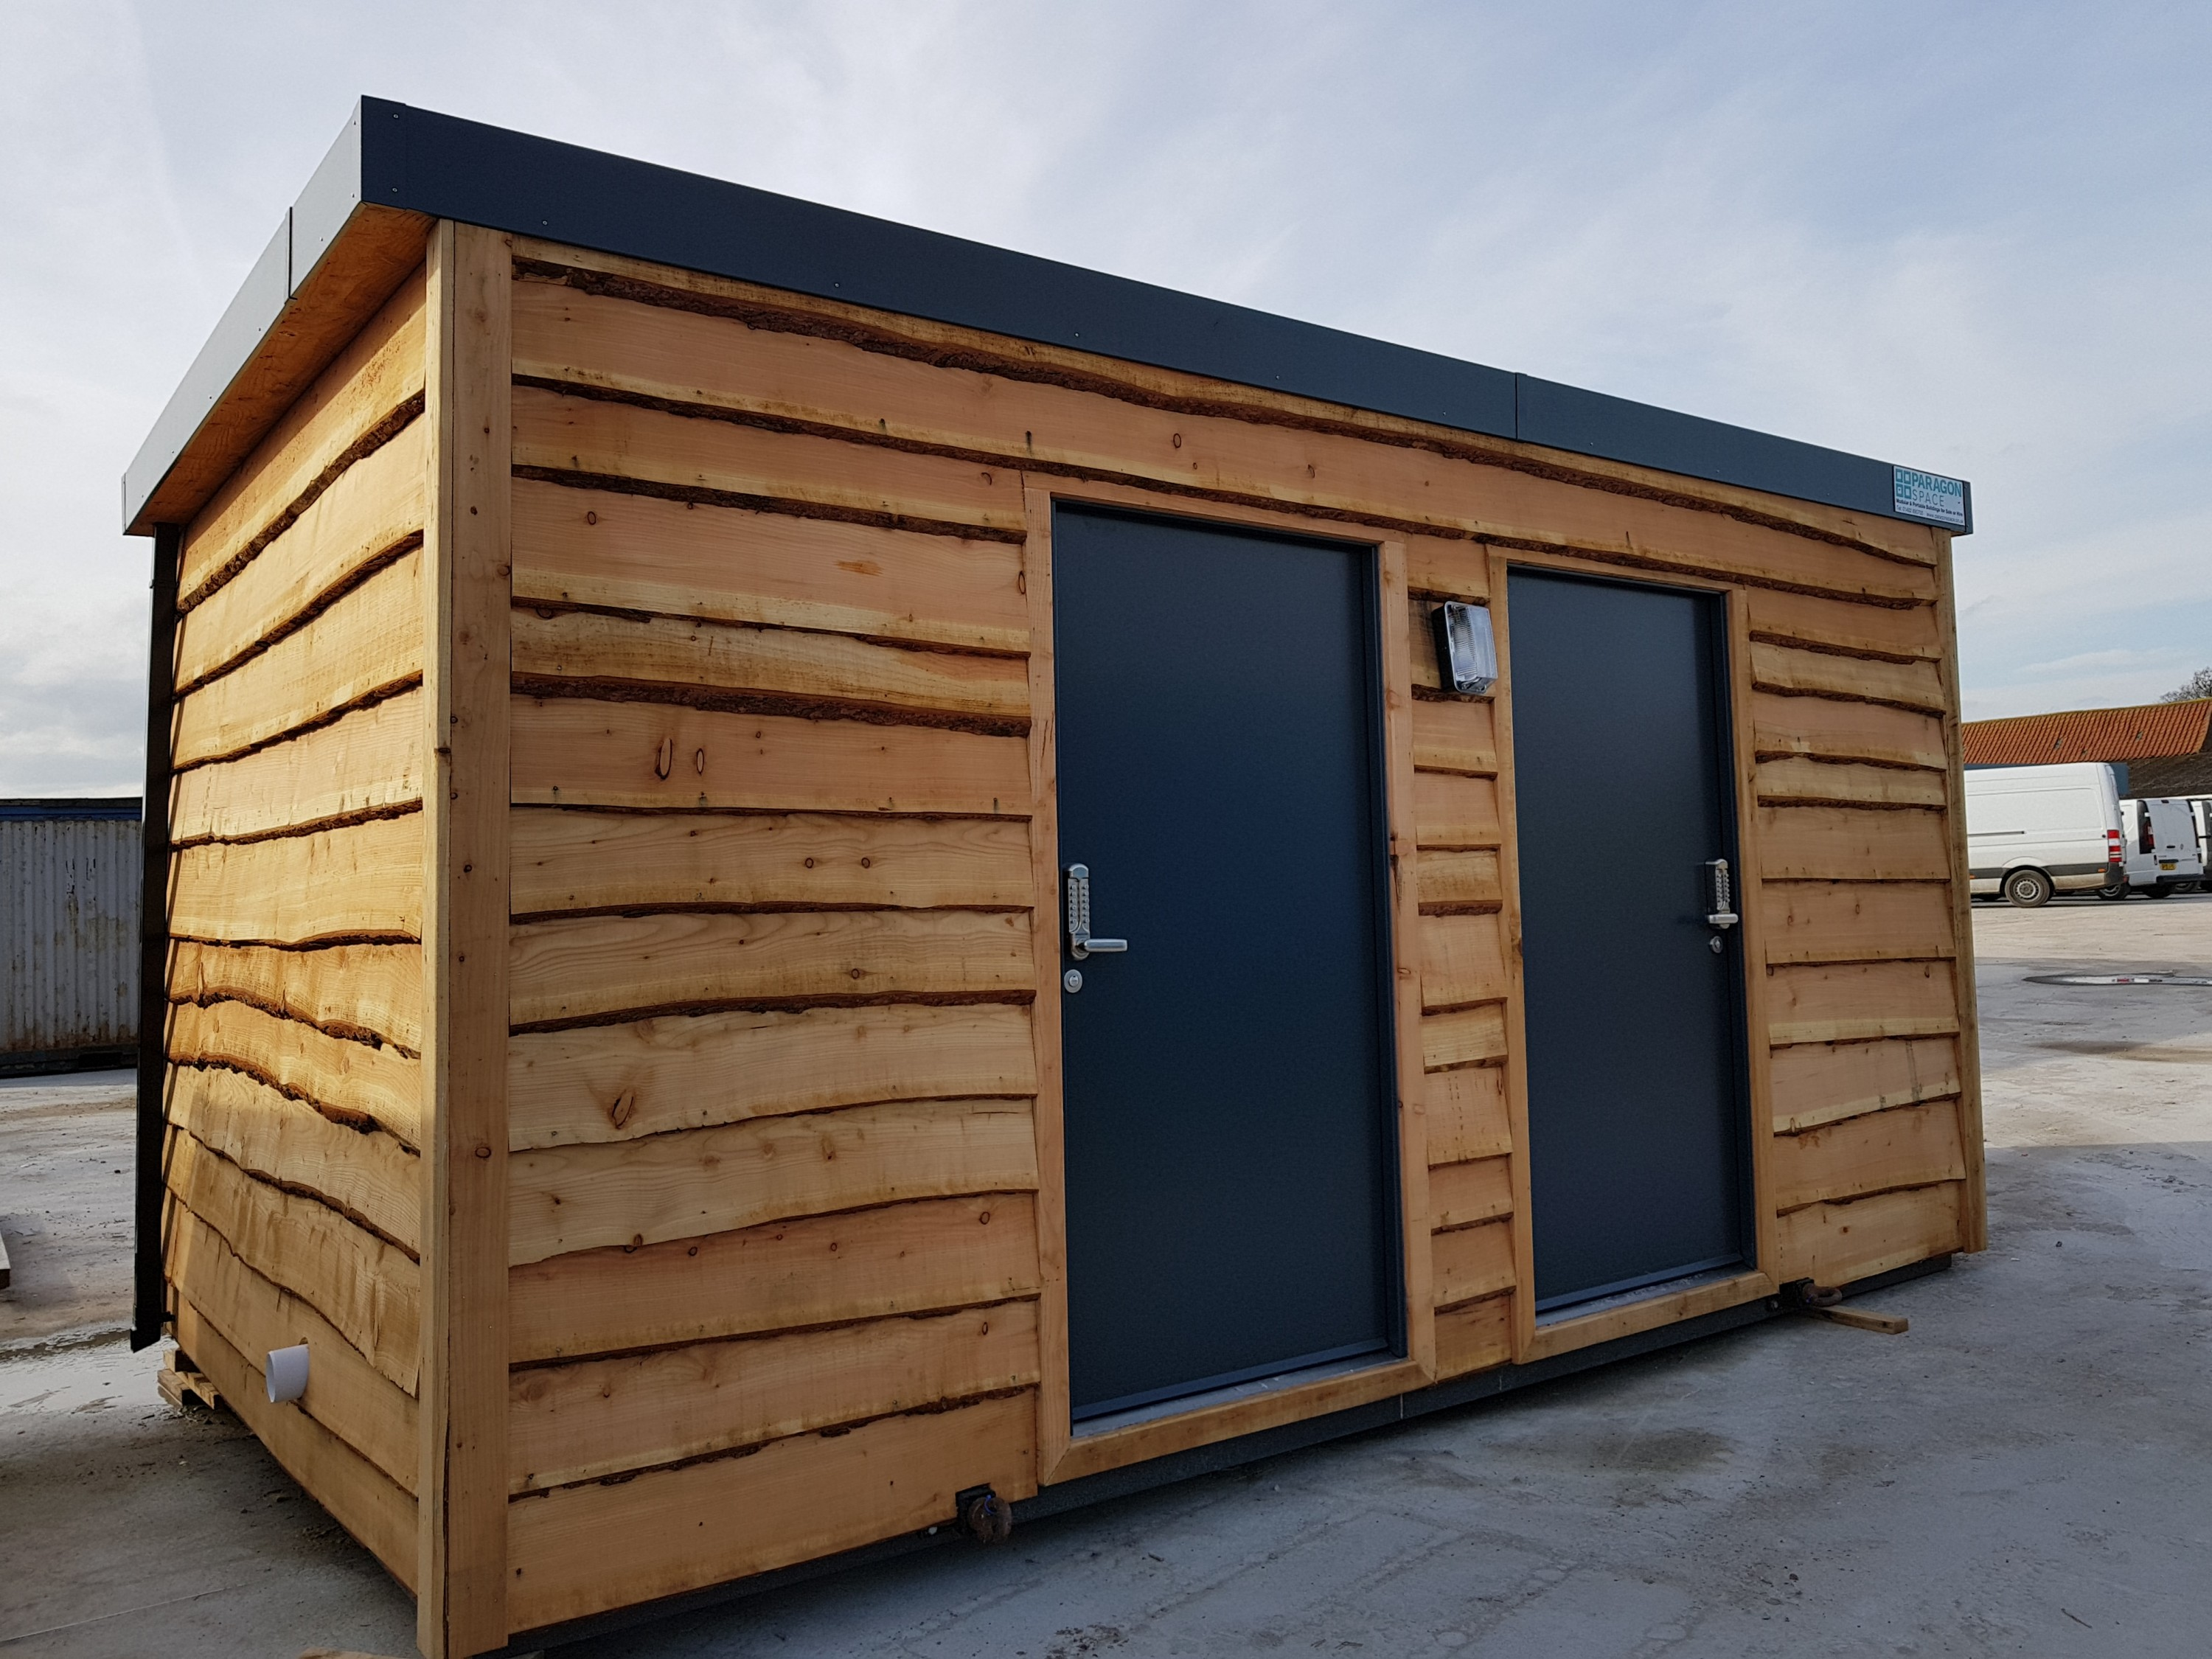 Campsite Showers Toilets Washroom | Paragon Space Modular Buildings UK